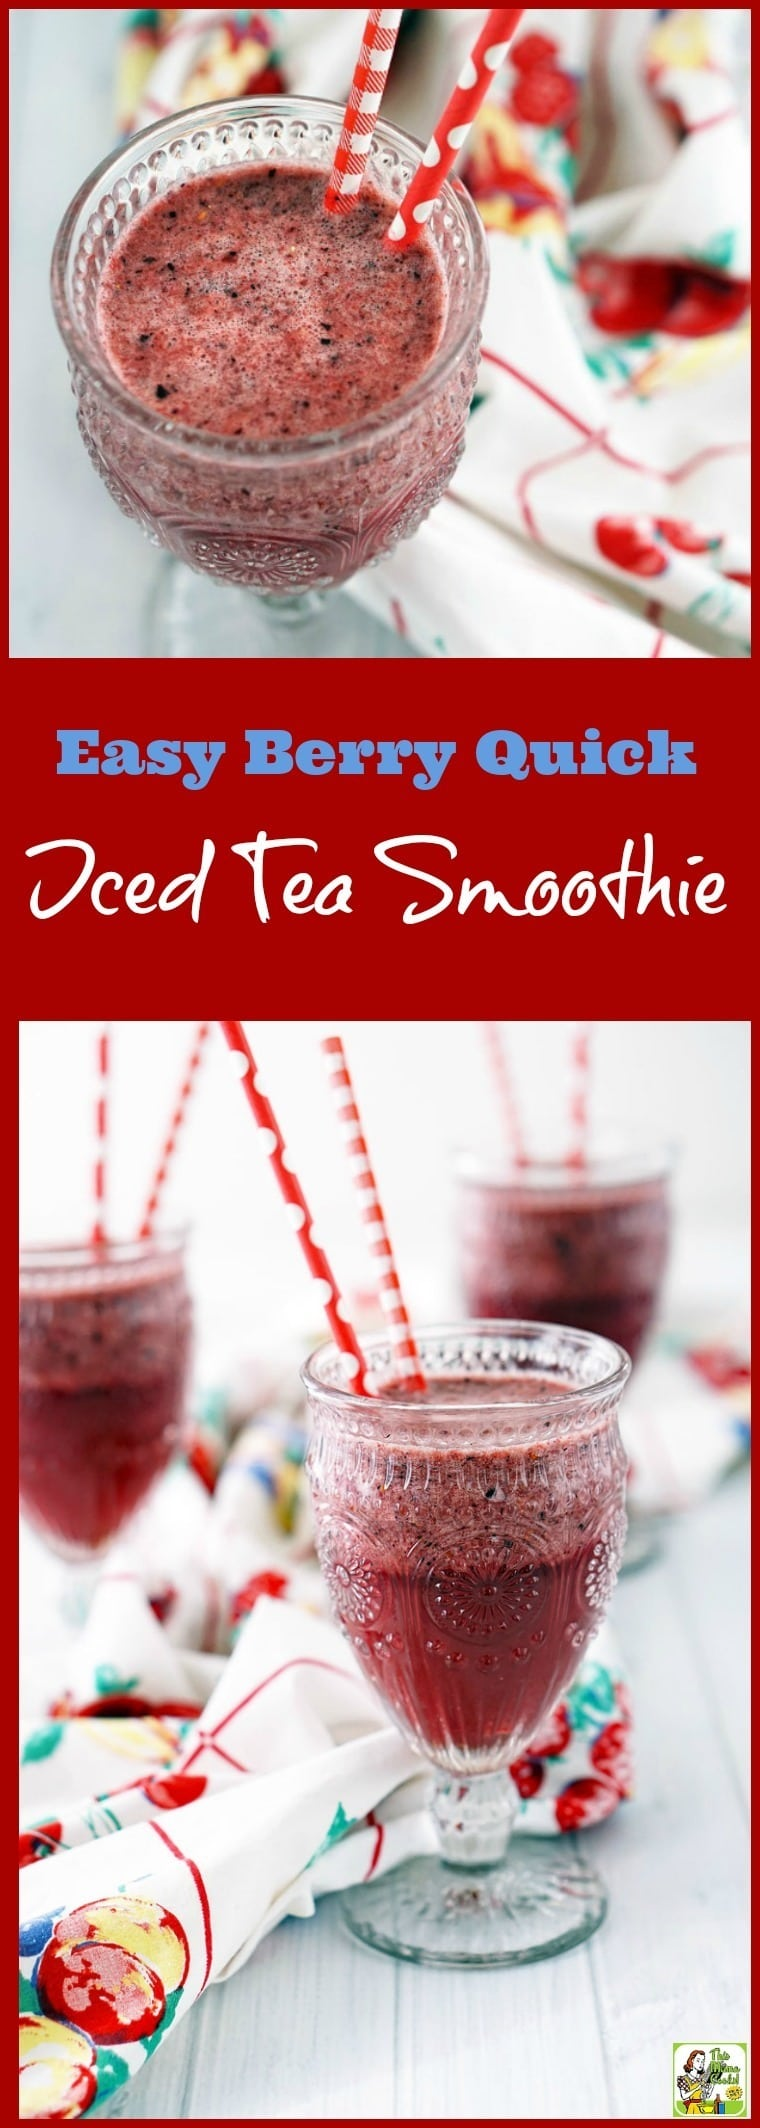 This Easy Berry Quick Iced Tea Smoothie recipe is a delicious way to jump-start the day and get energized. Make this easy to make healthy frozen berry smoothie recipe that\'s naturally gluten free and dairy free. #recipe #easy #recipeoftheday #healthyrecipes #glutenfree #easyrecipes #breakfast #snacks #lowcaloriesnacks #smoothies #tea #berries #icedtea #smoothiesrecipes #healthydrinks #healthydrinksrecipe